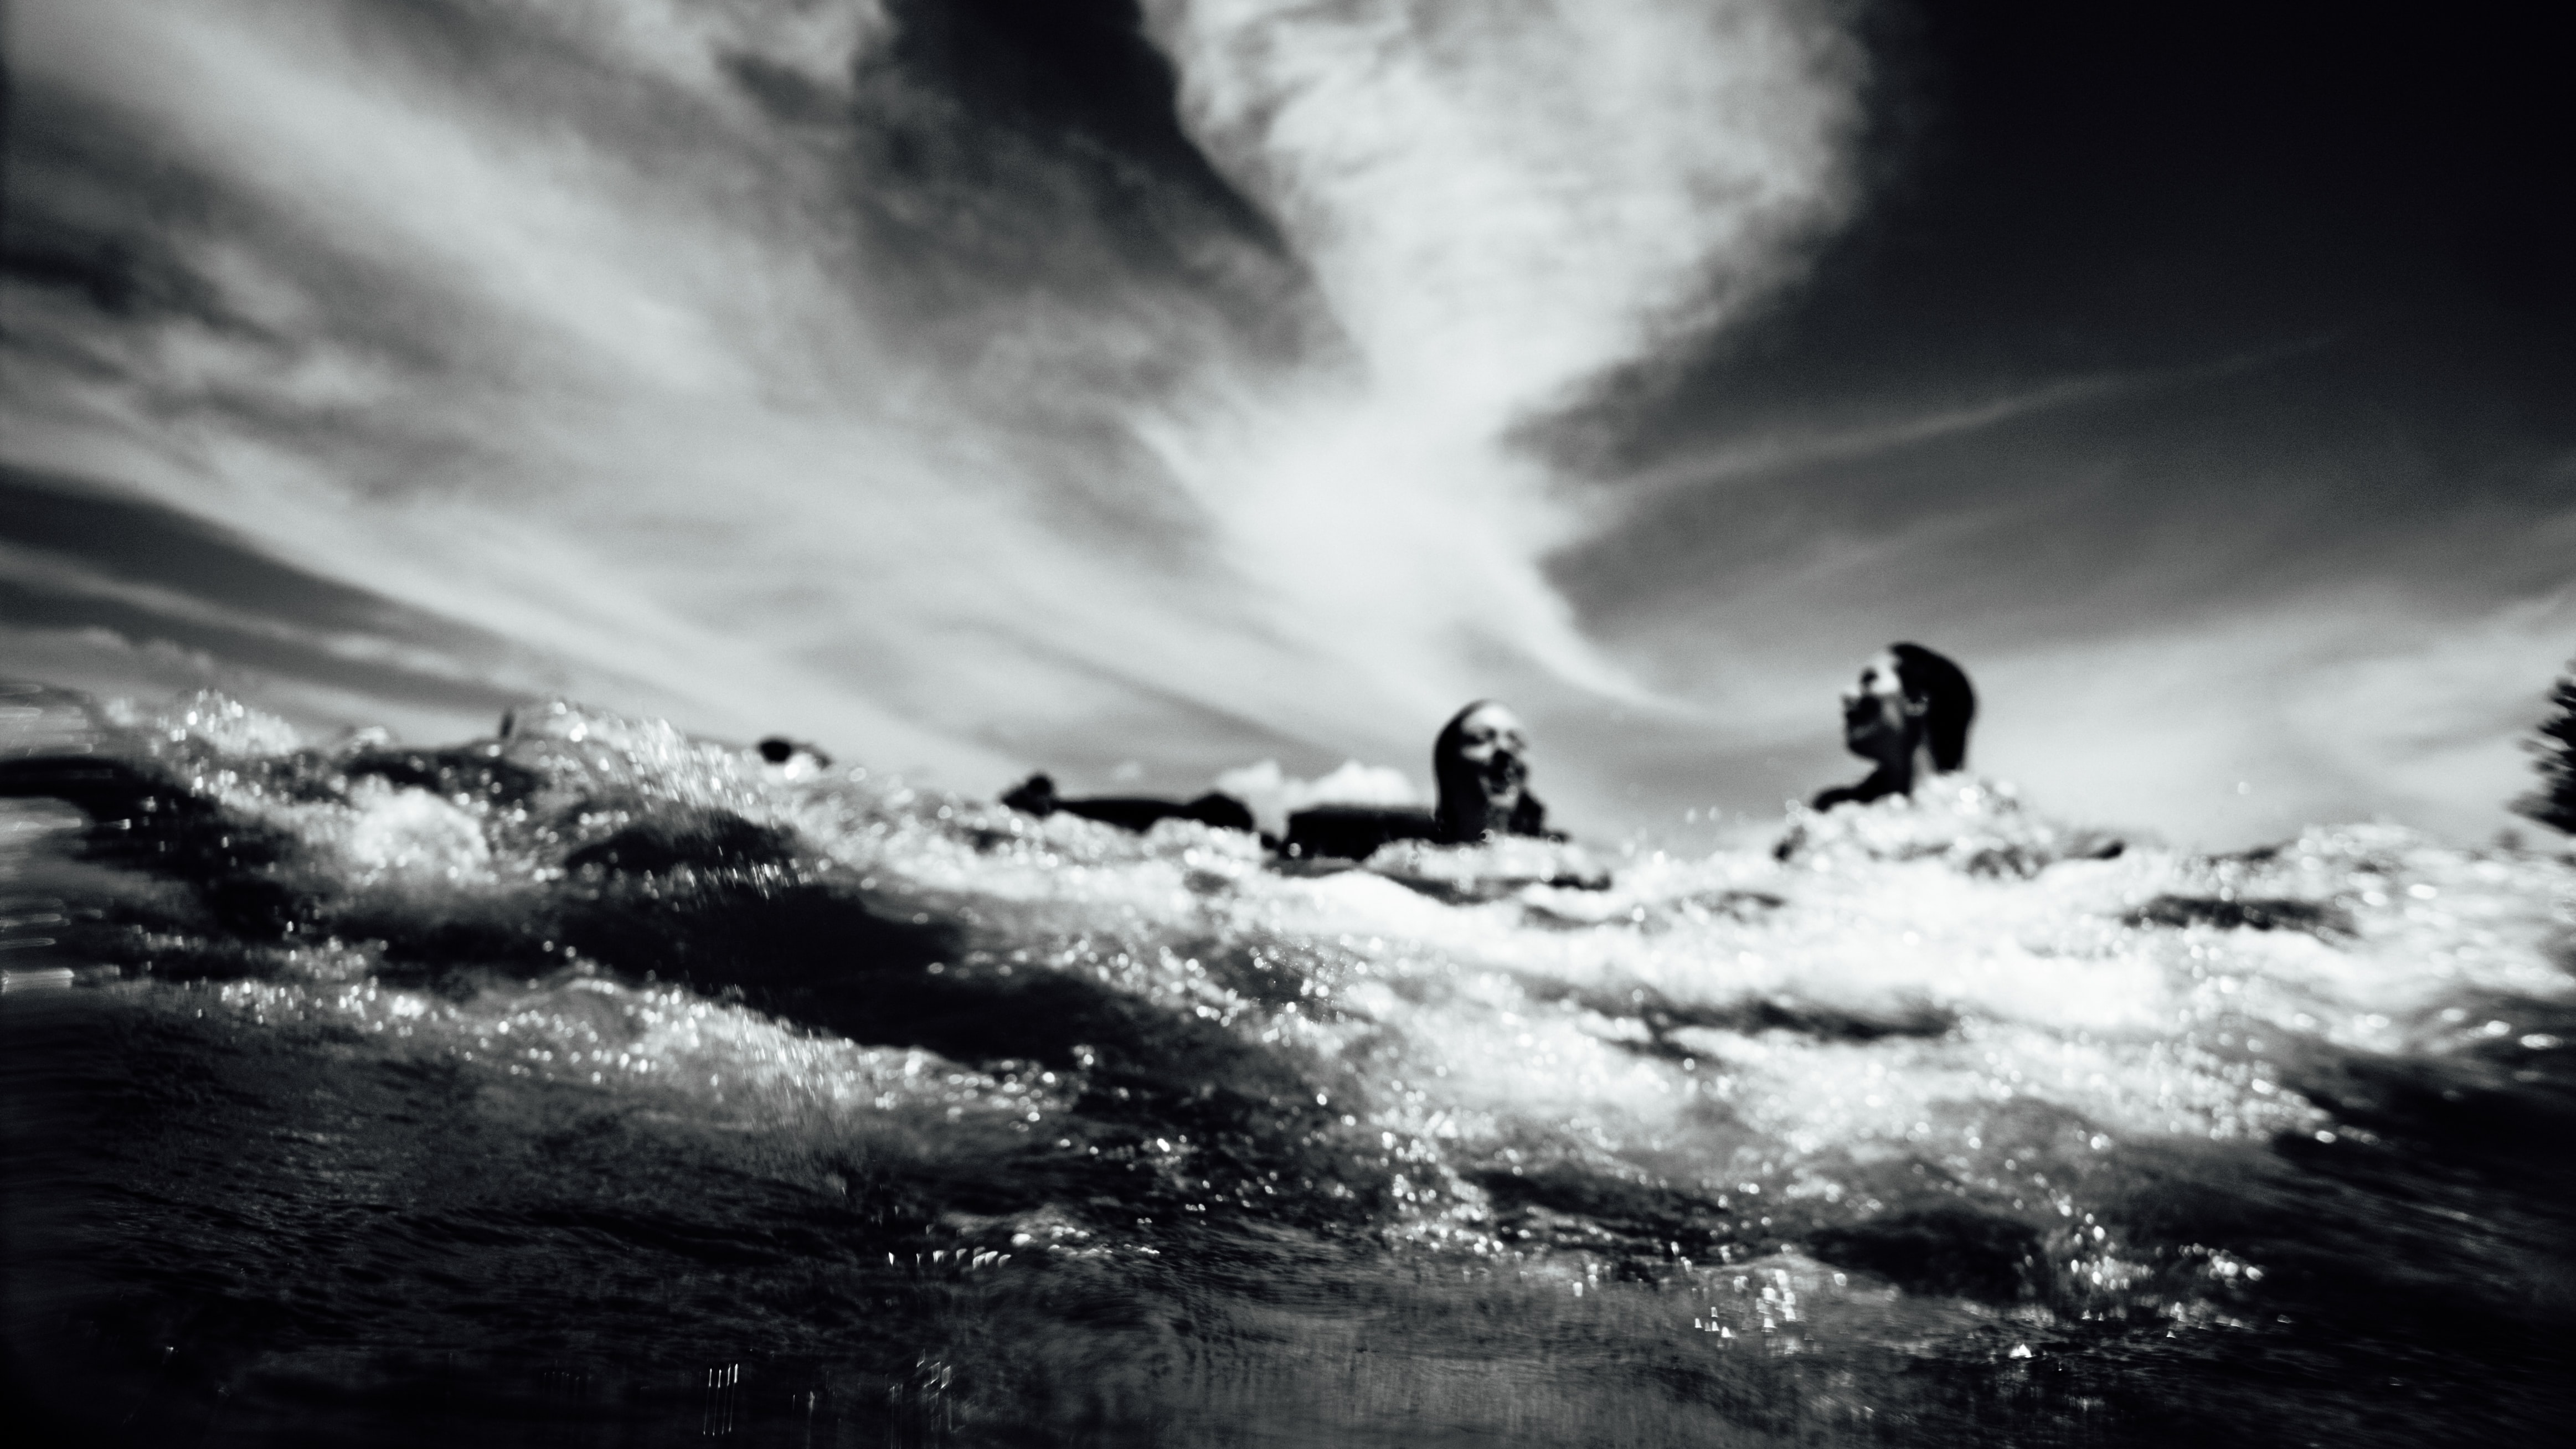 grayscale photo of two persons swimming on body of water